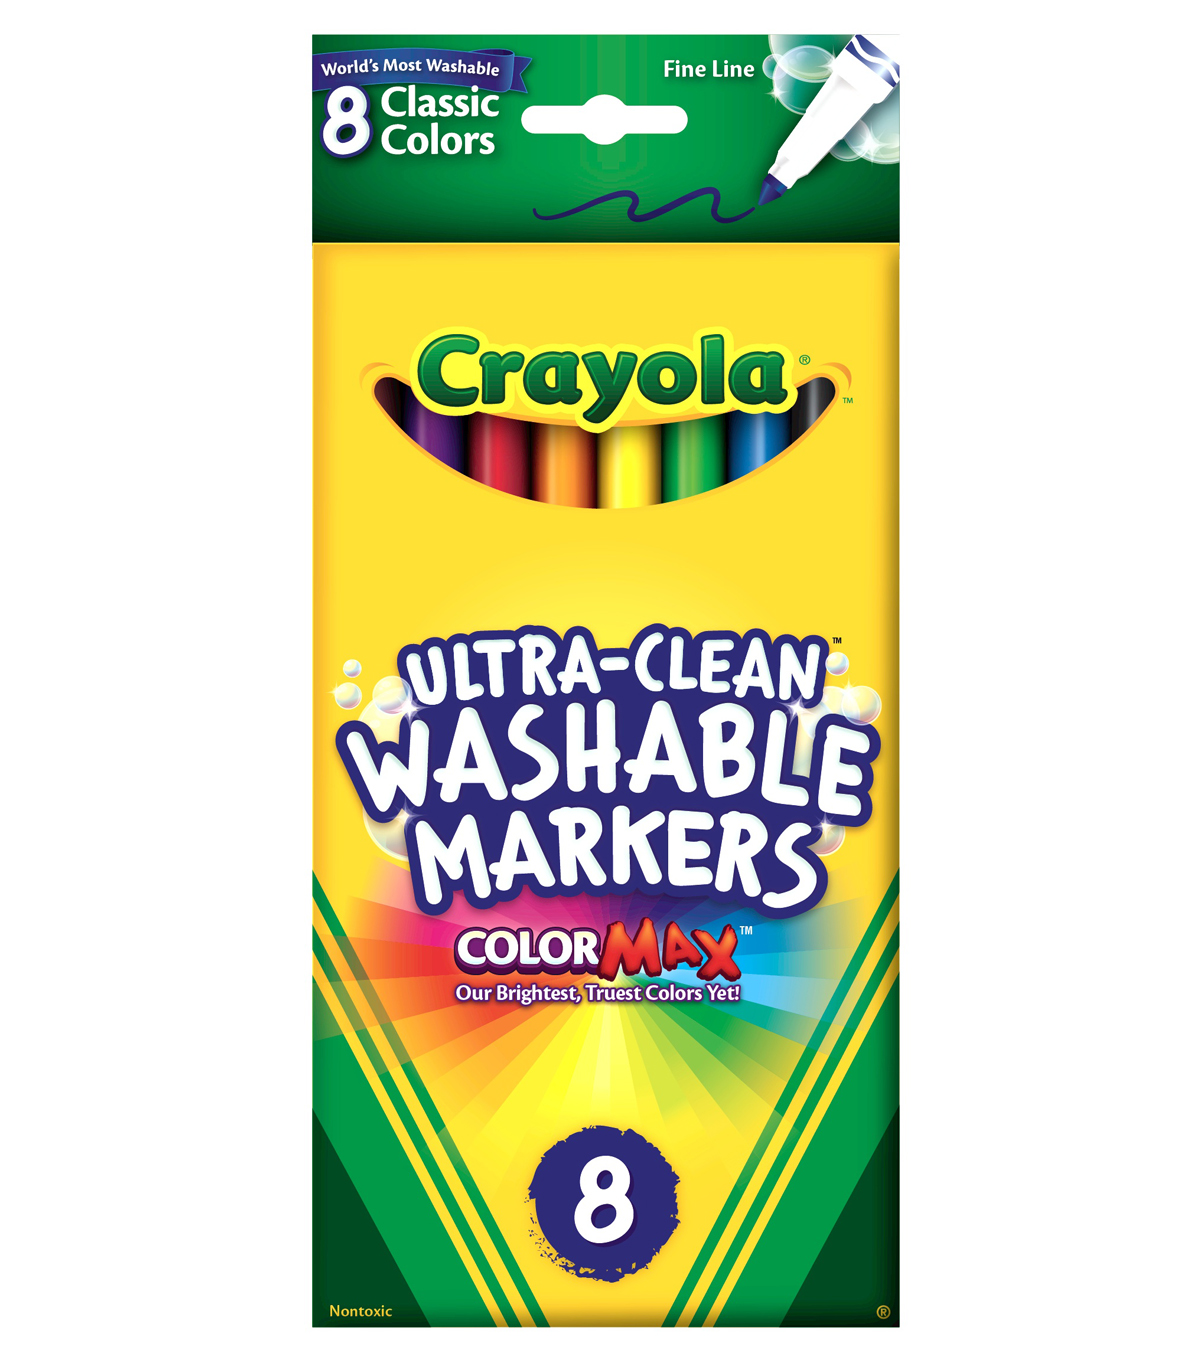 Crayola Fine Line Washable Markers-8PK/Classic Colors